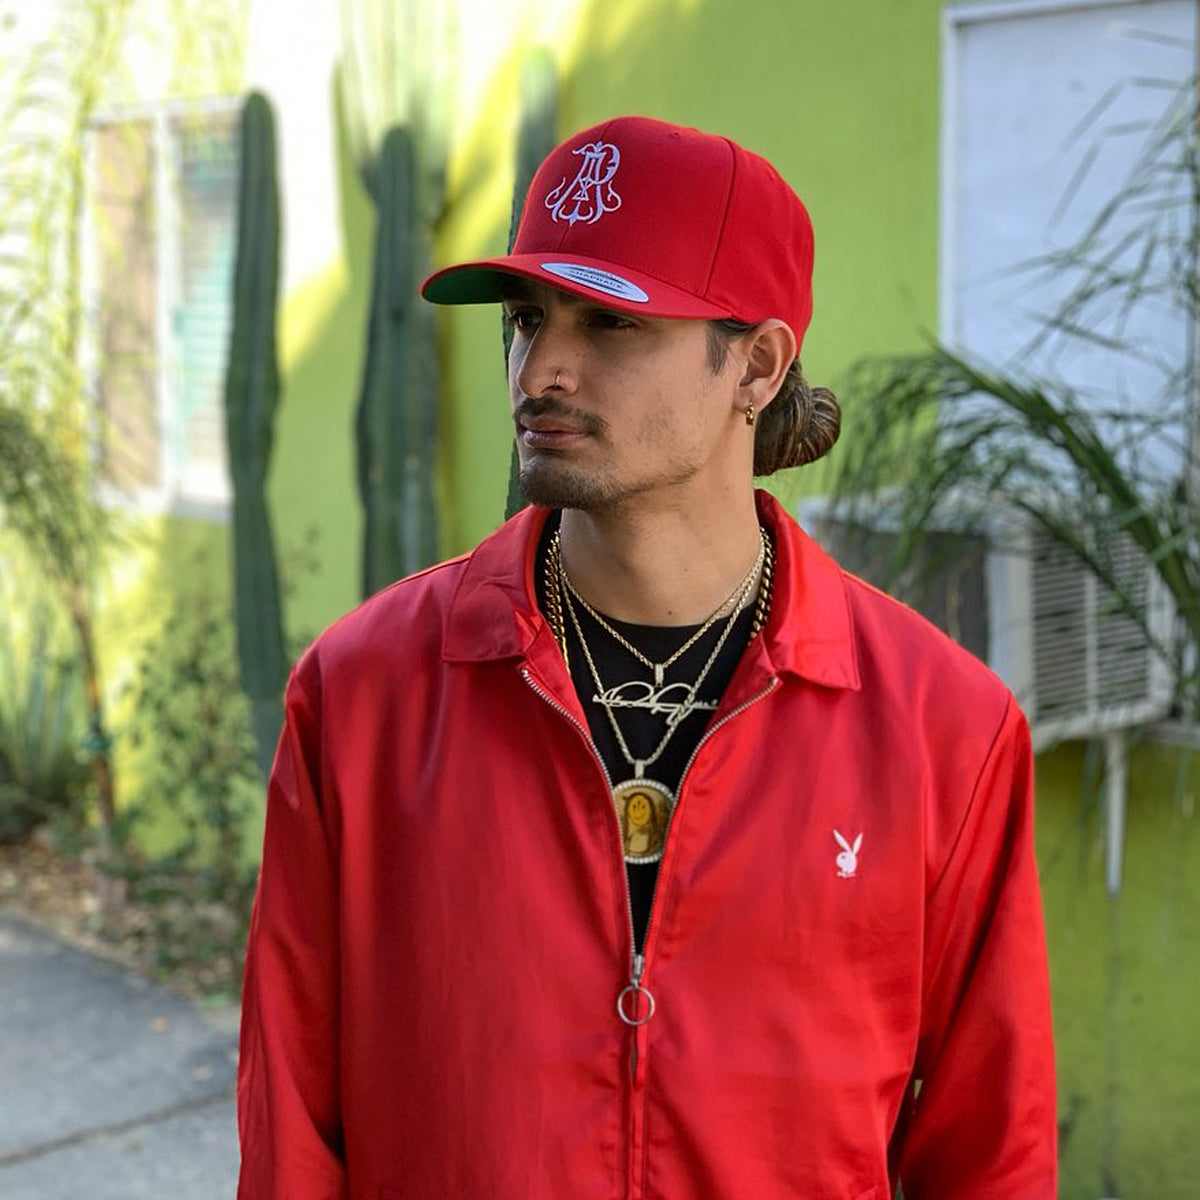 Monogram Snapback Hat - Red